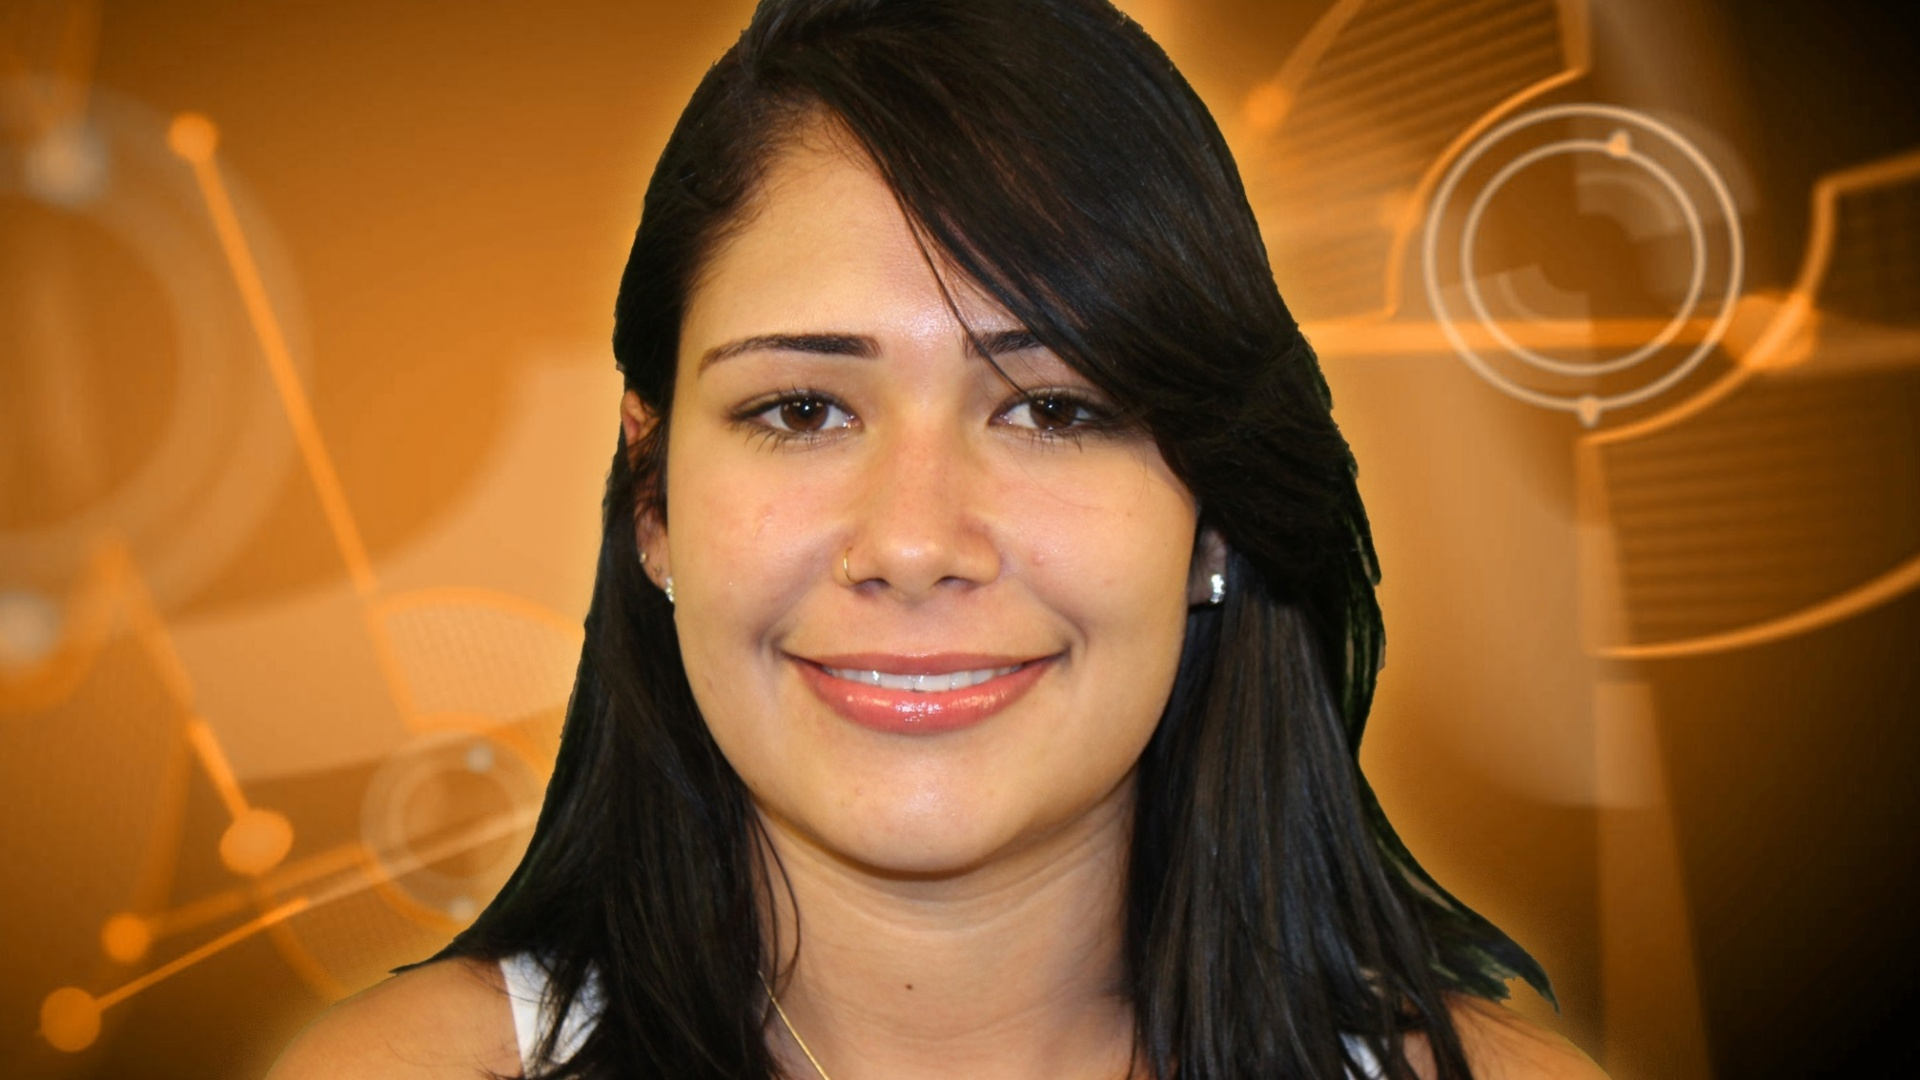 Jakeline, 22 anos, estudante de zootecnia, participante do BBB 12 (jan/2012)